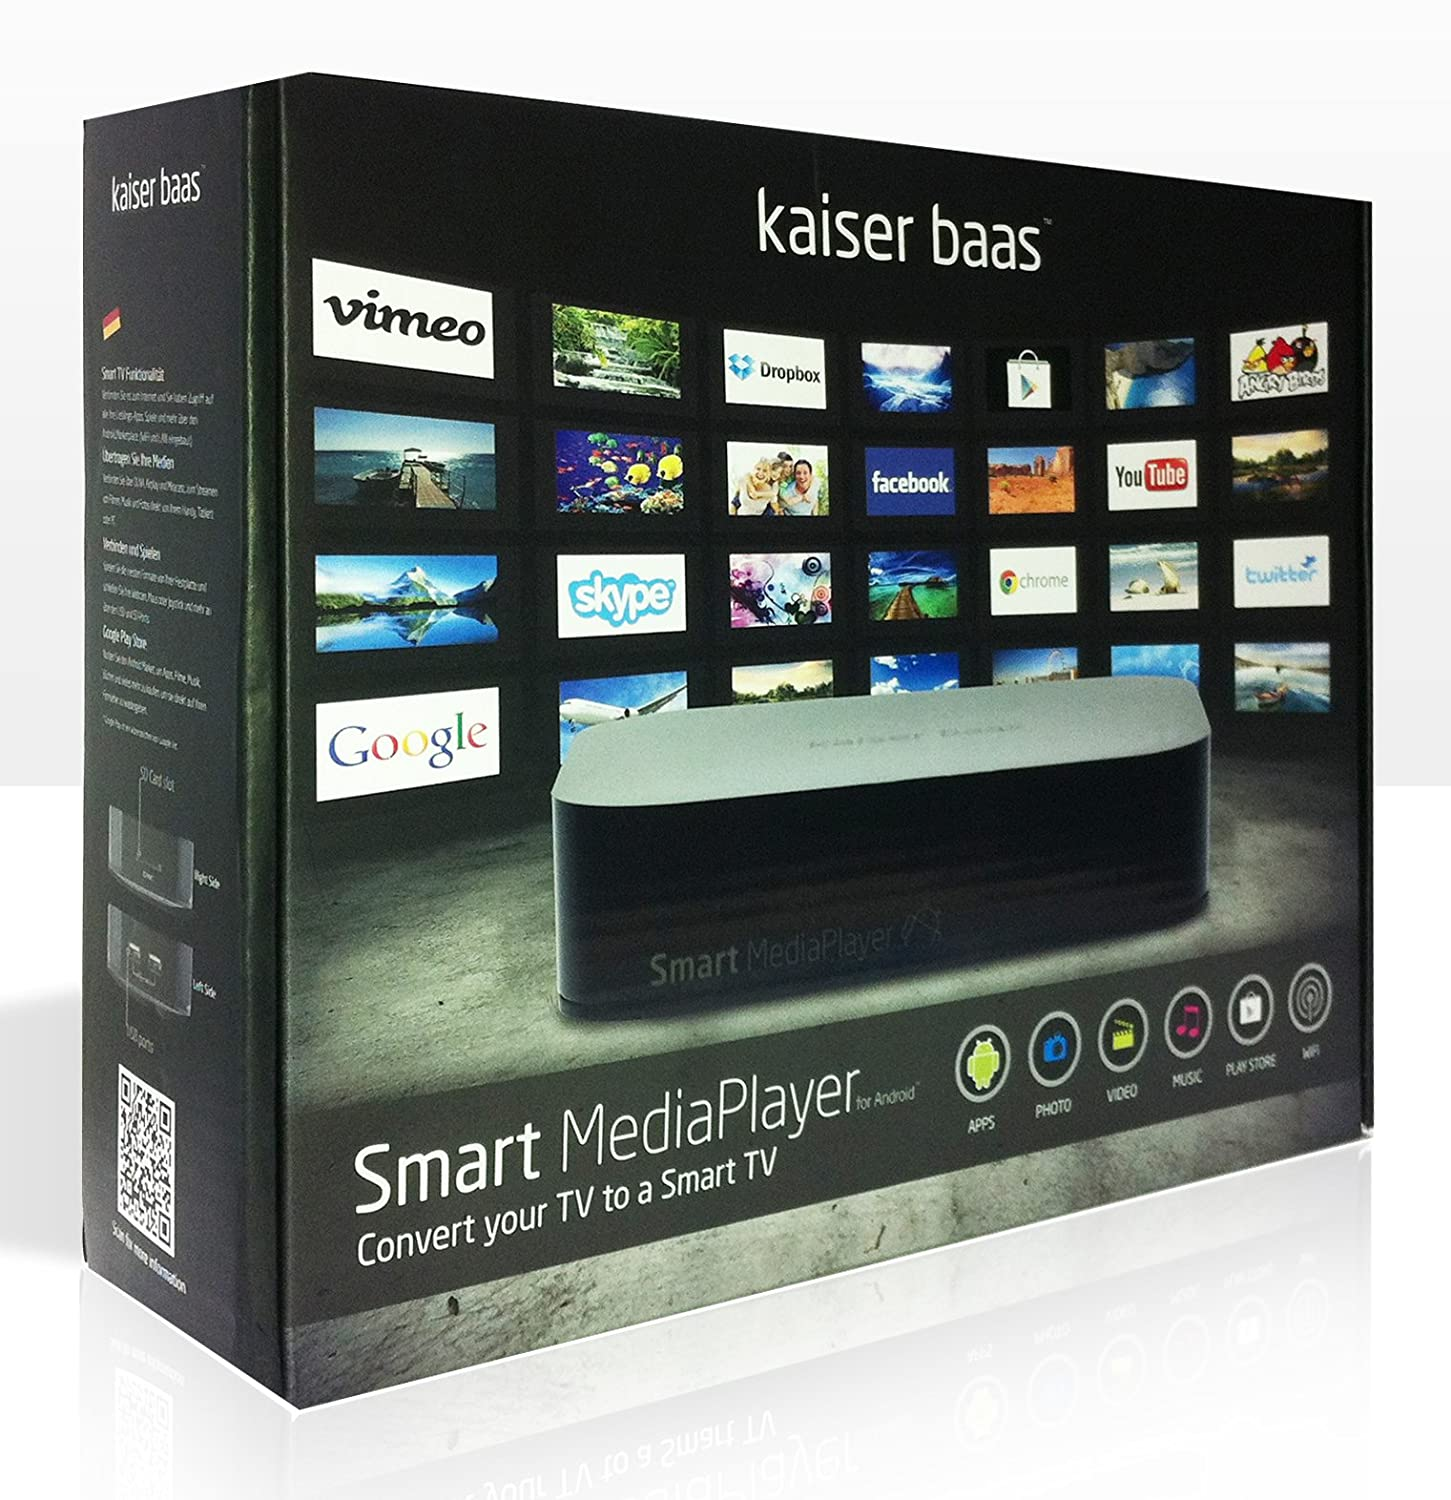 kaiser baas smart media player manual